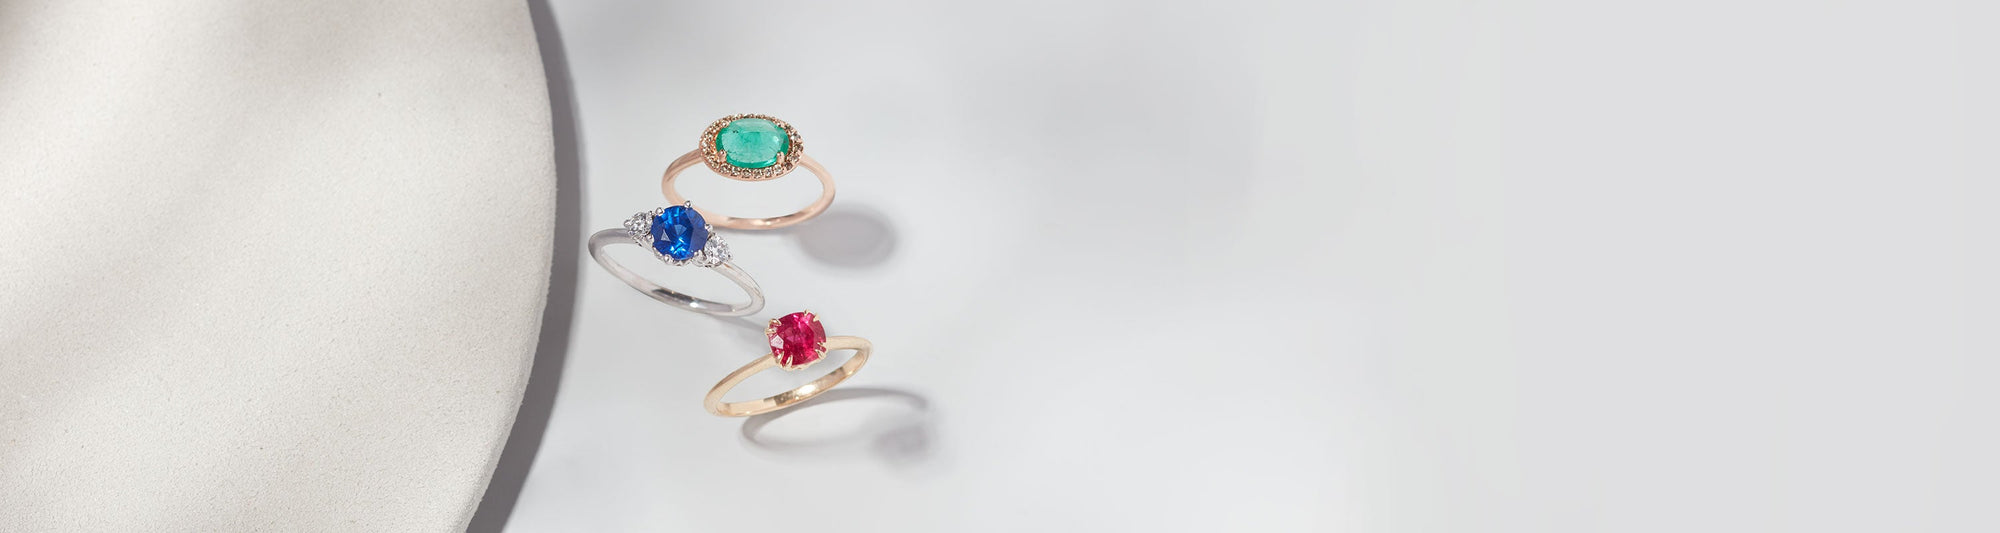 In Stock Rings - 2019 Gift Guide